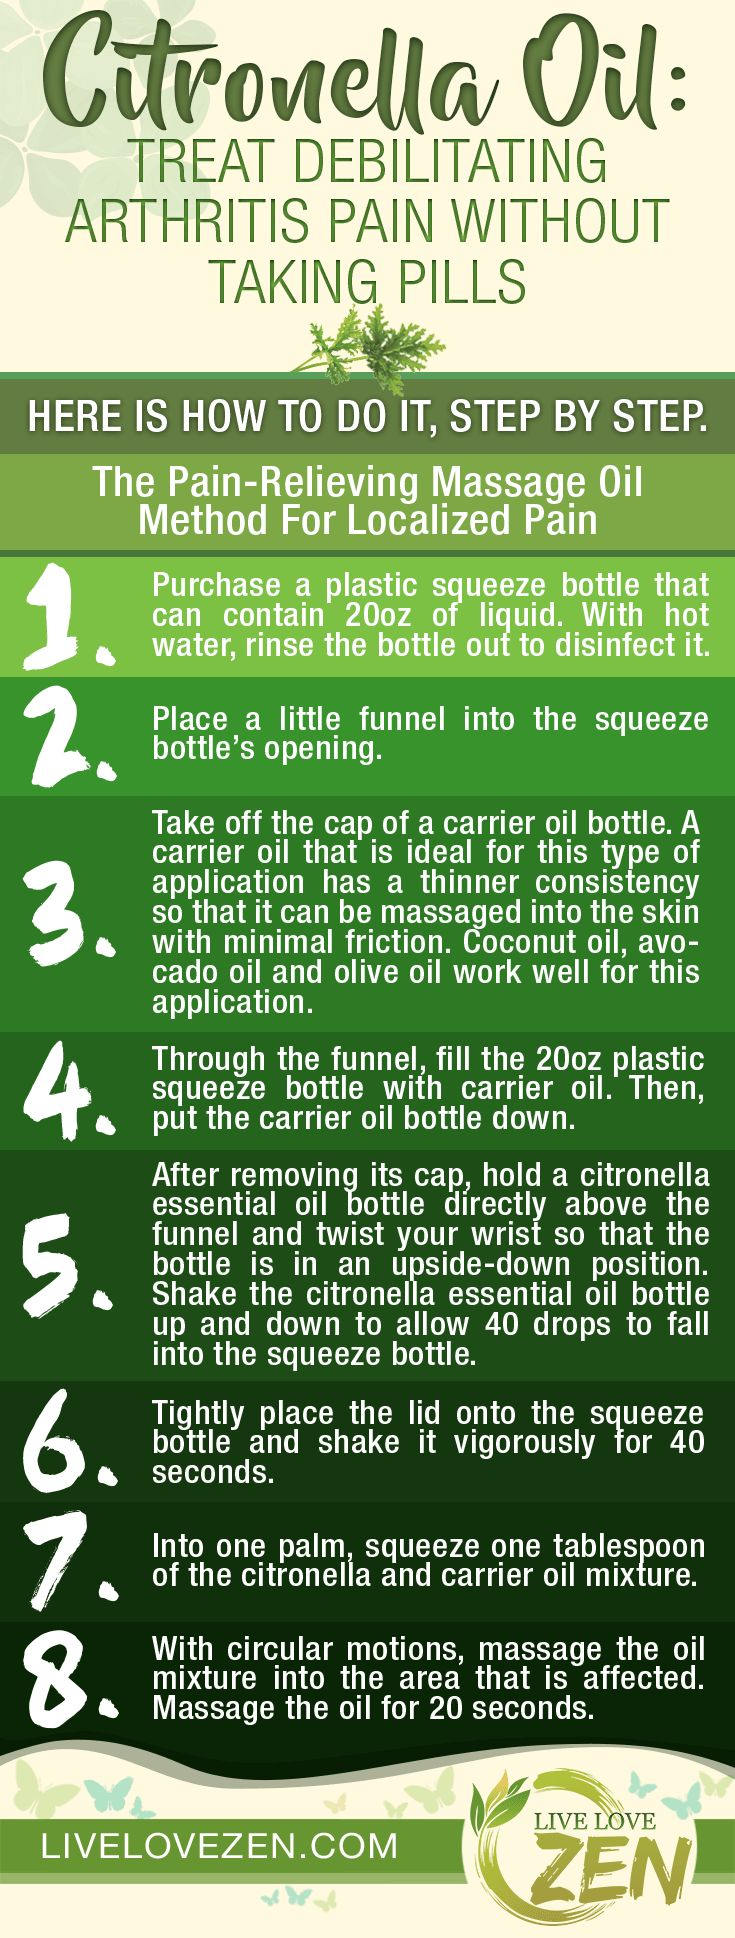 Most people are familiar with citronella essential oil because of its amazing ability to repel mosquitoes. During the hot summer months, the rela lemony scent of citronella seems to be everywhere. In fact, citronella essential oil is capable of so much than keeping annoying mosquitoes away in the summertime. This essential oil is packed …